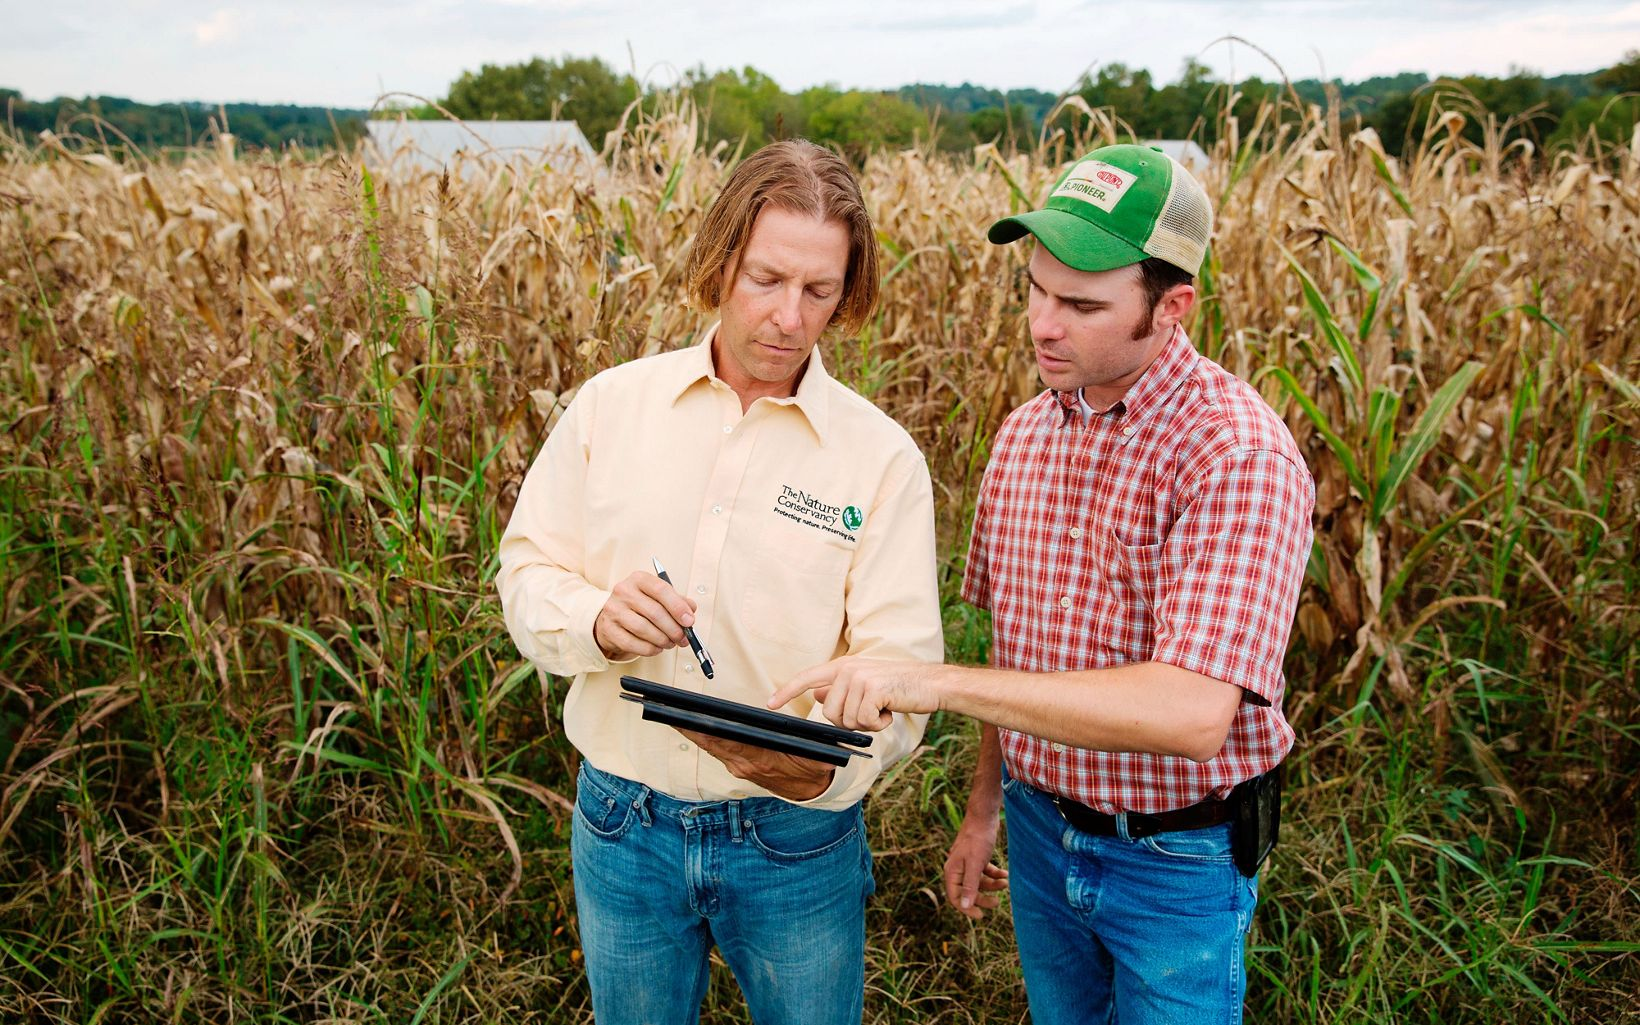 A farmer and TNC employee look at a tablet.